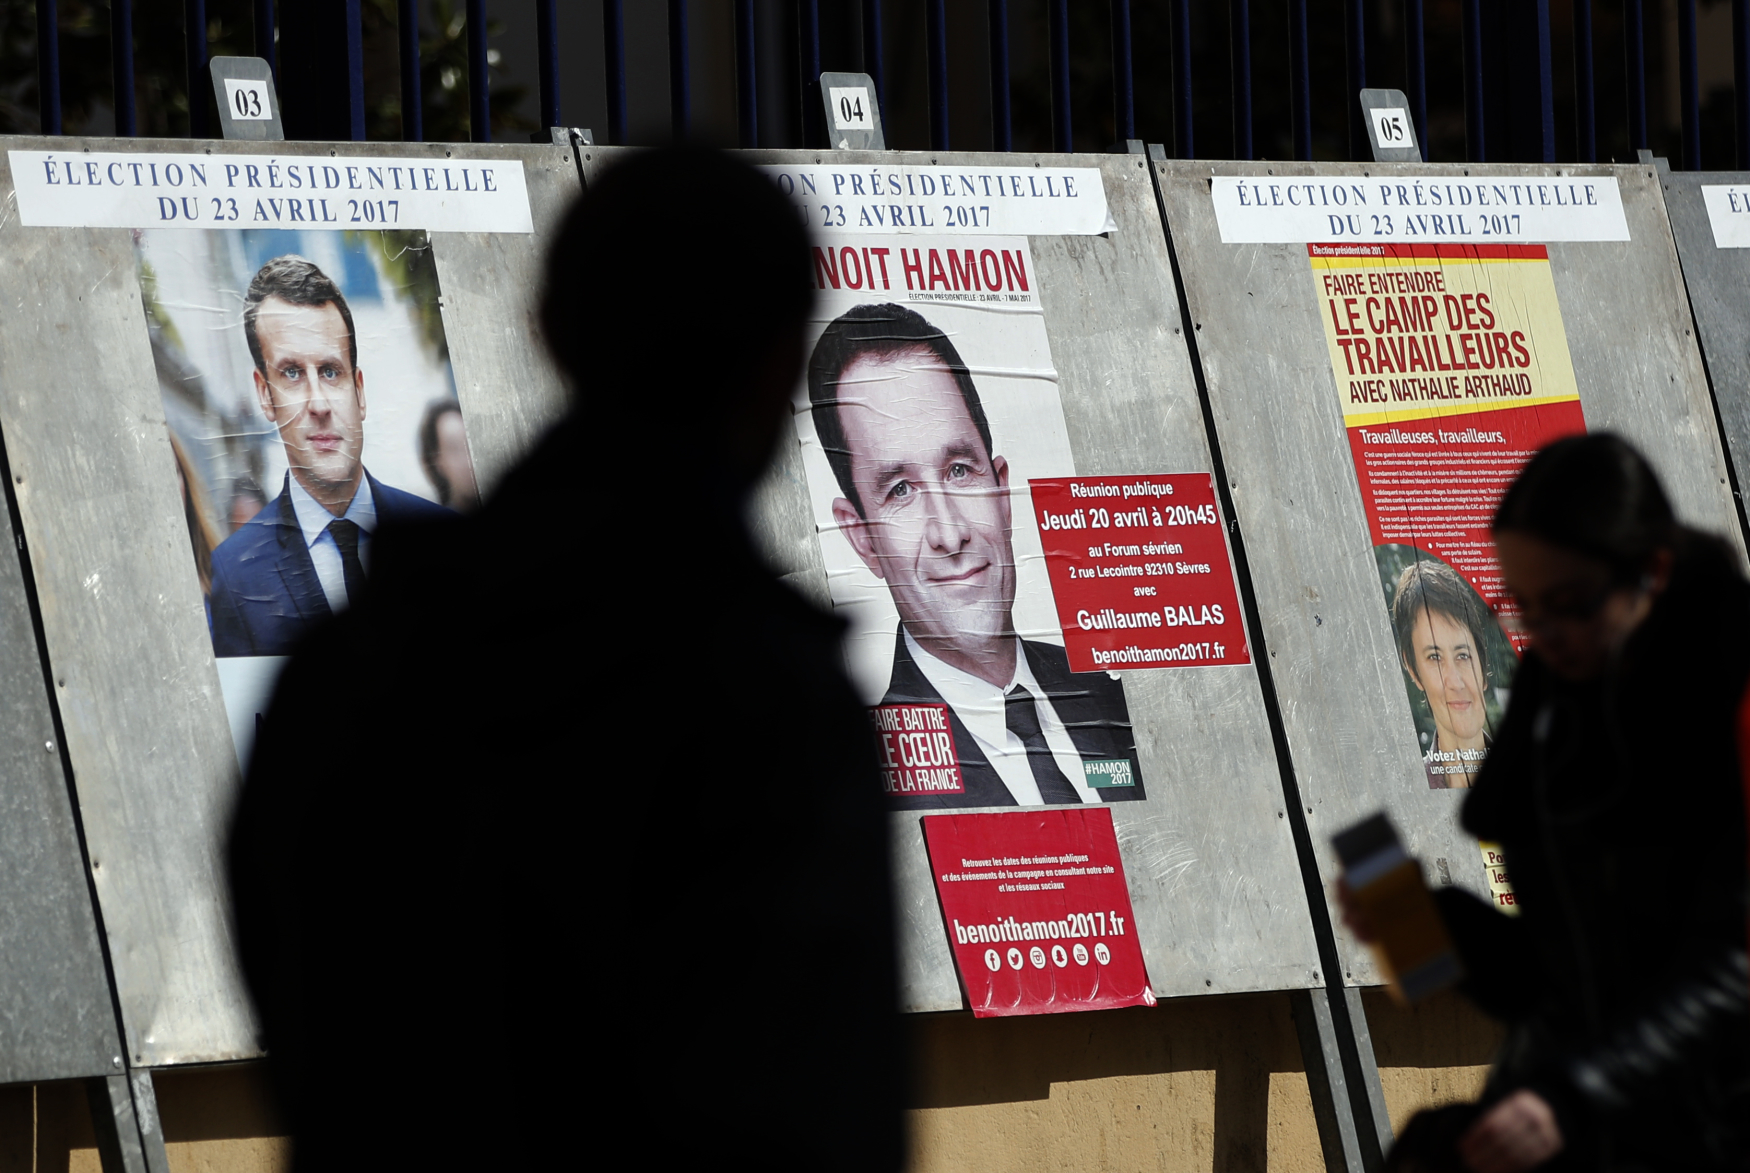 L'élection présidentielle en France, photo: ČTK